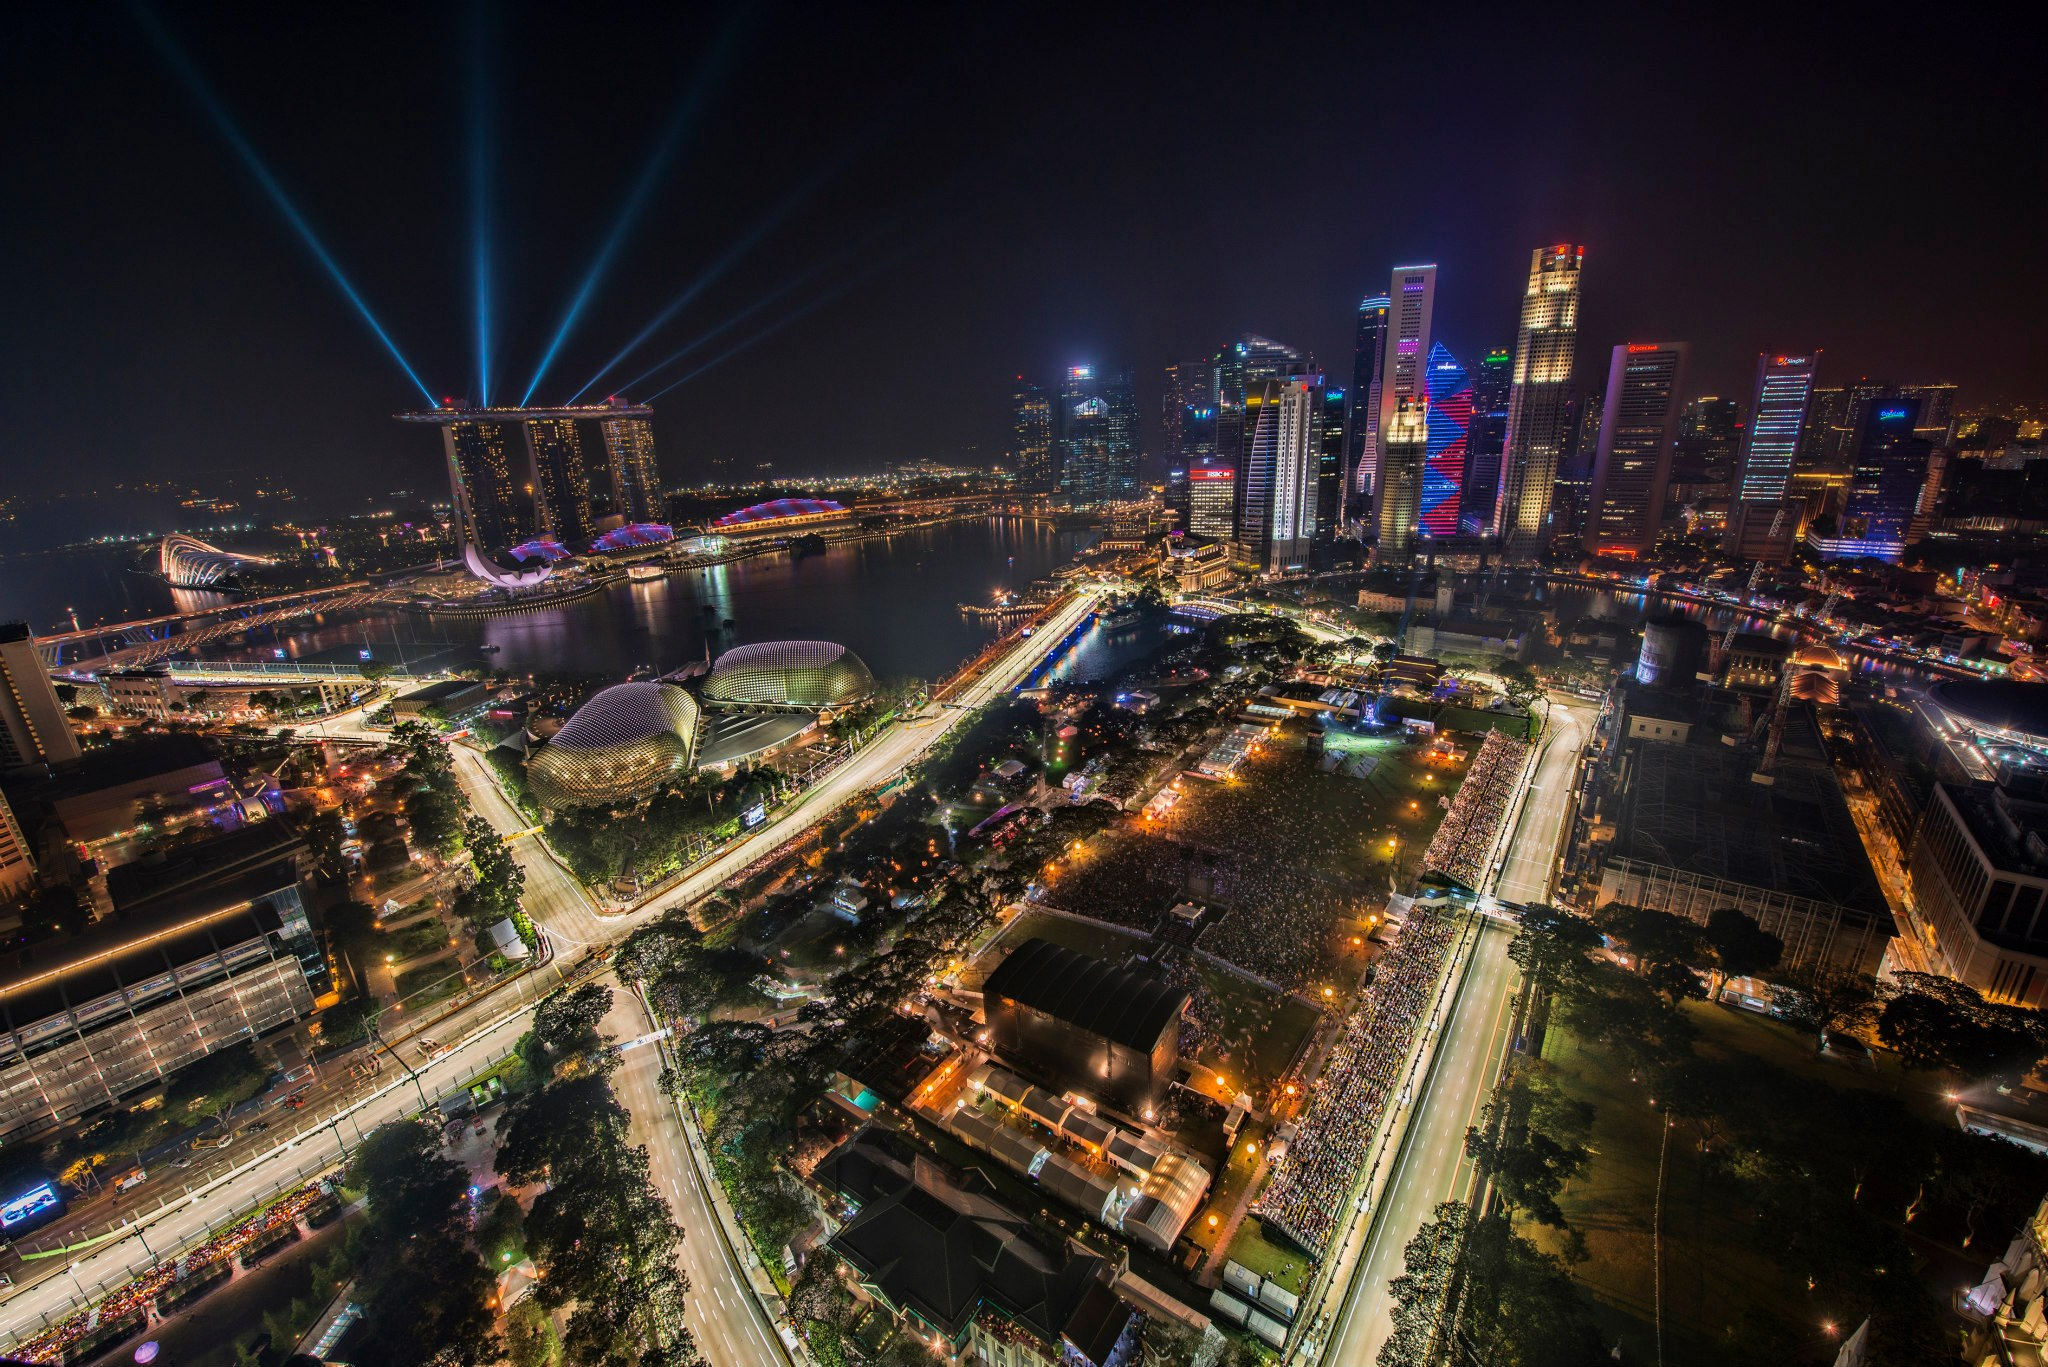 1_singapore_f1_night_race_2012_city_skyline.jpg